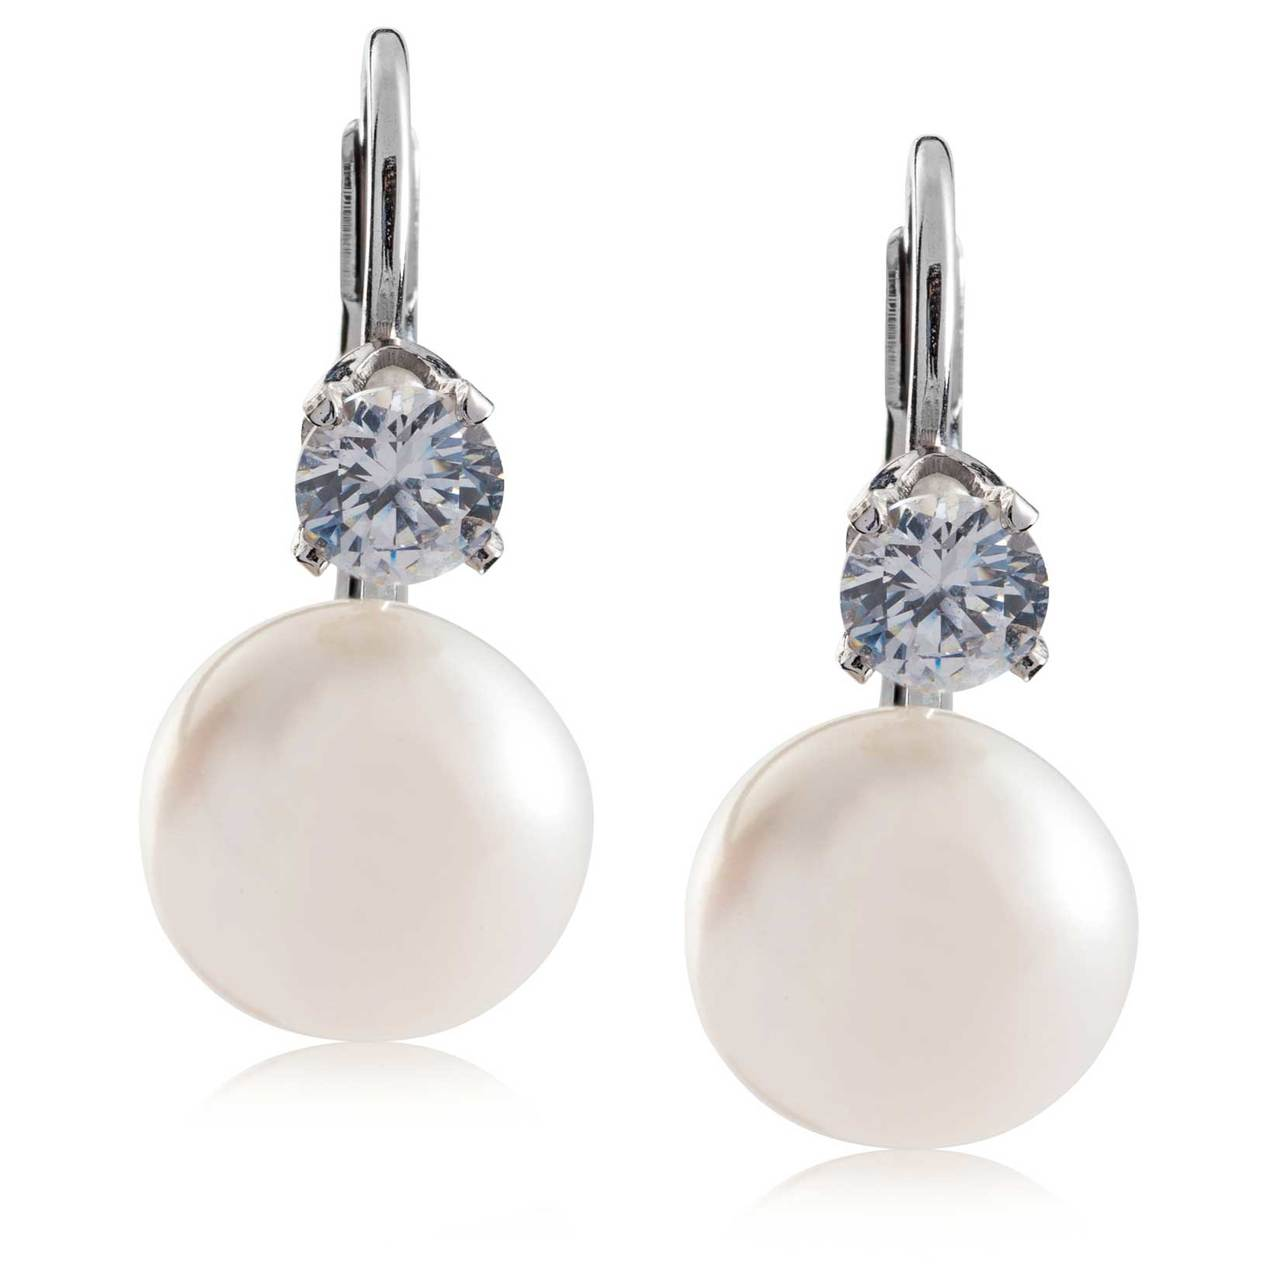 Kezef .925 Solid Sterling Silver 13mm Freshwater Button Pearl Leverback Earrings oqHWrDPsAO